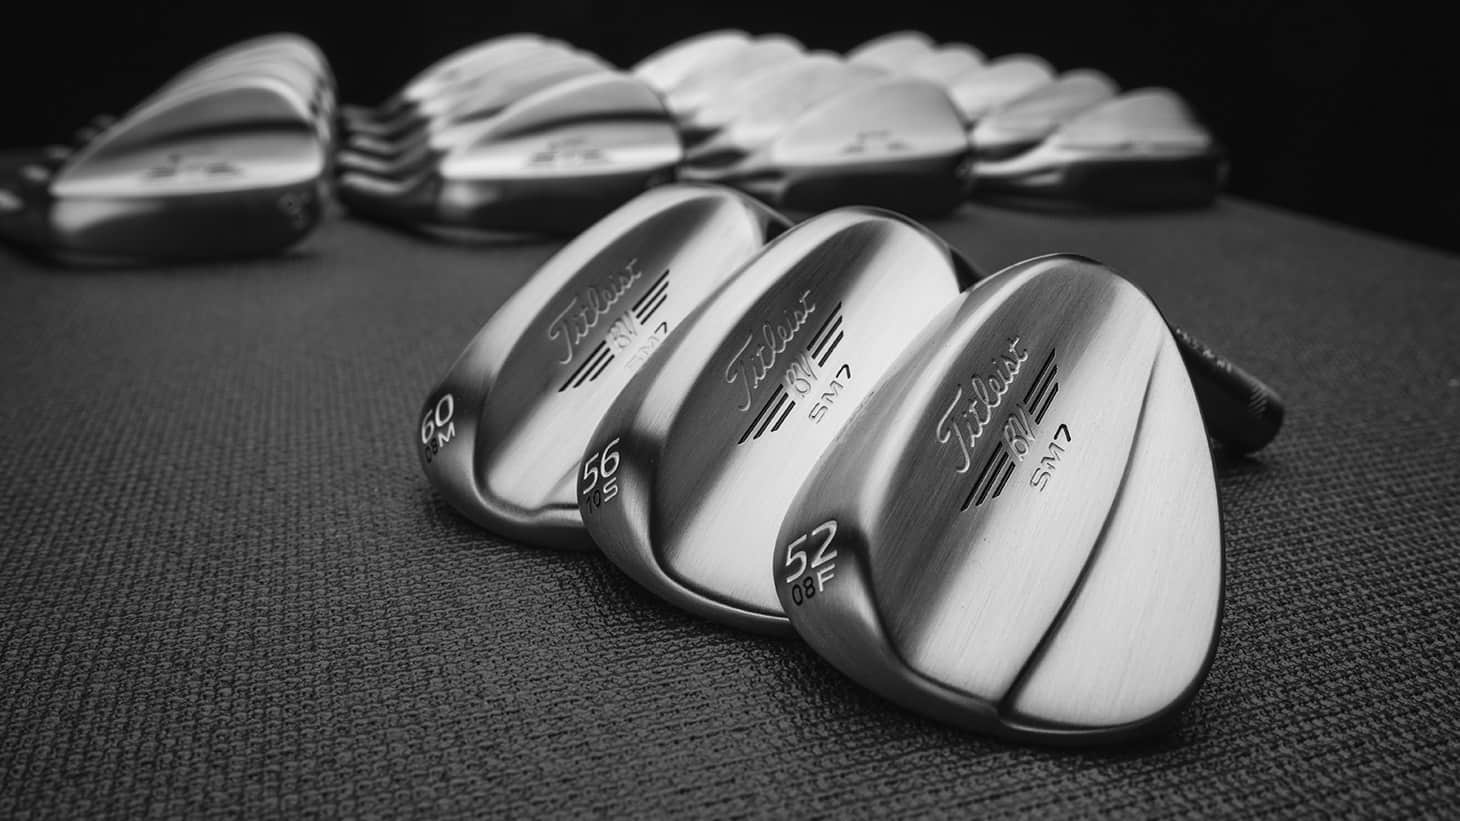 3 Titleist Vokey SM7 Wedges in Raw finish in foreground with several more in out of focus background.